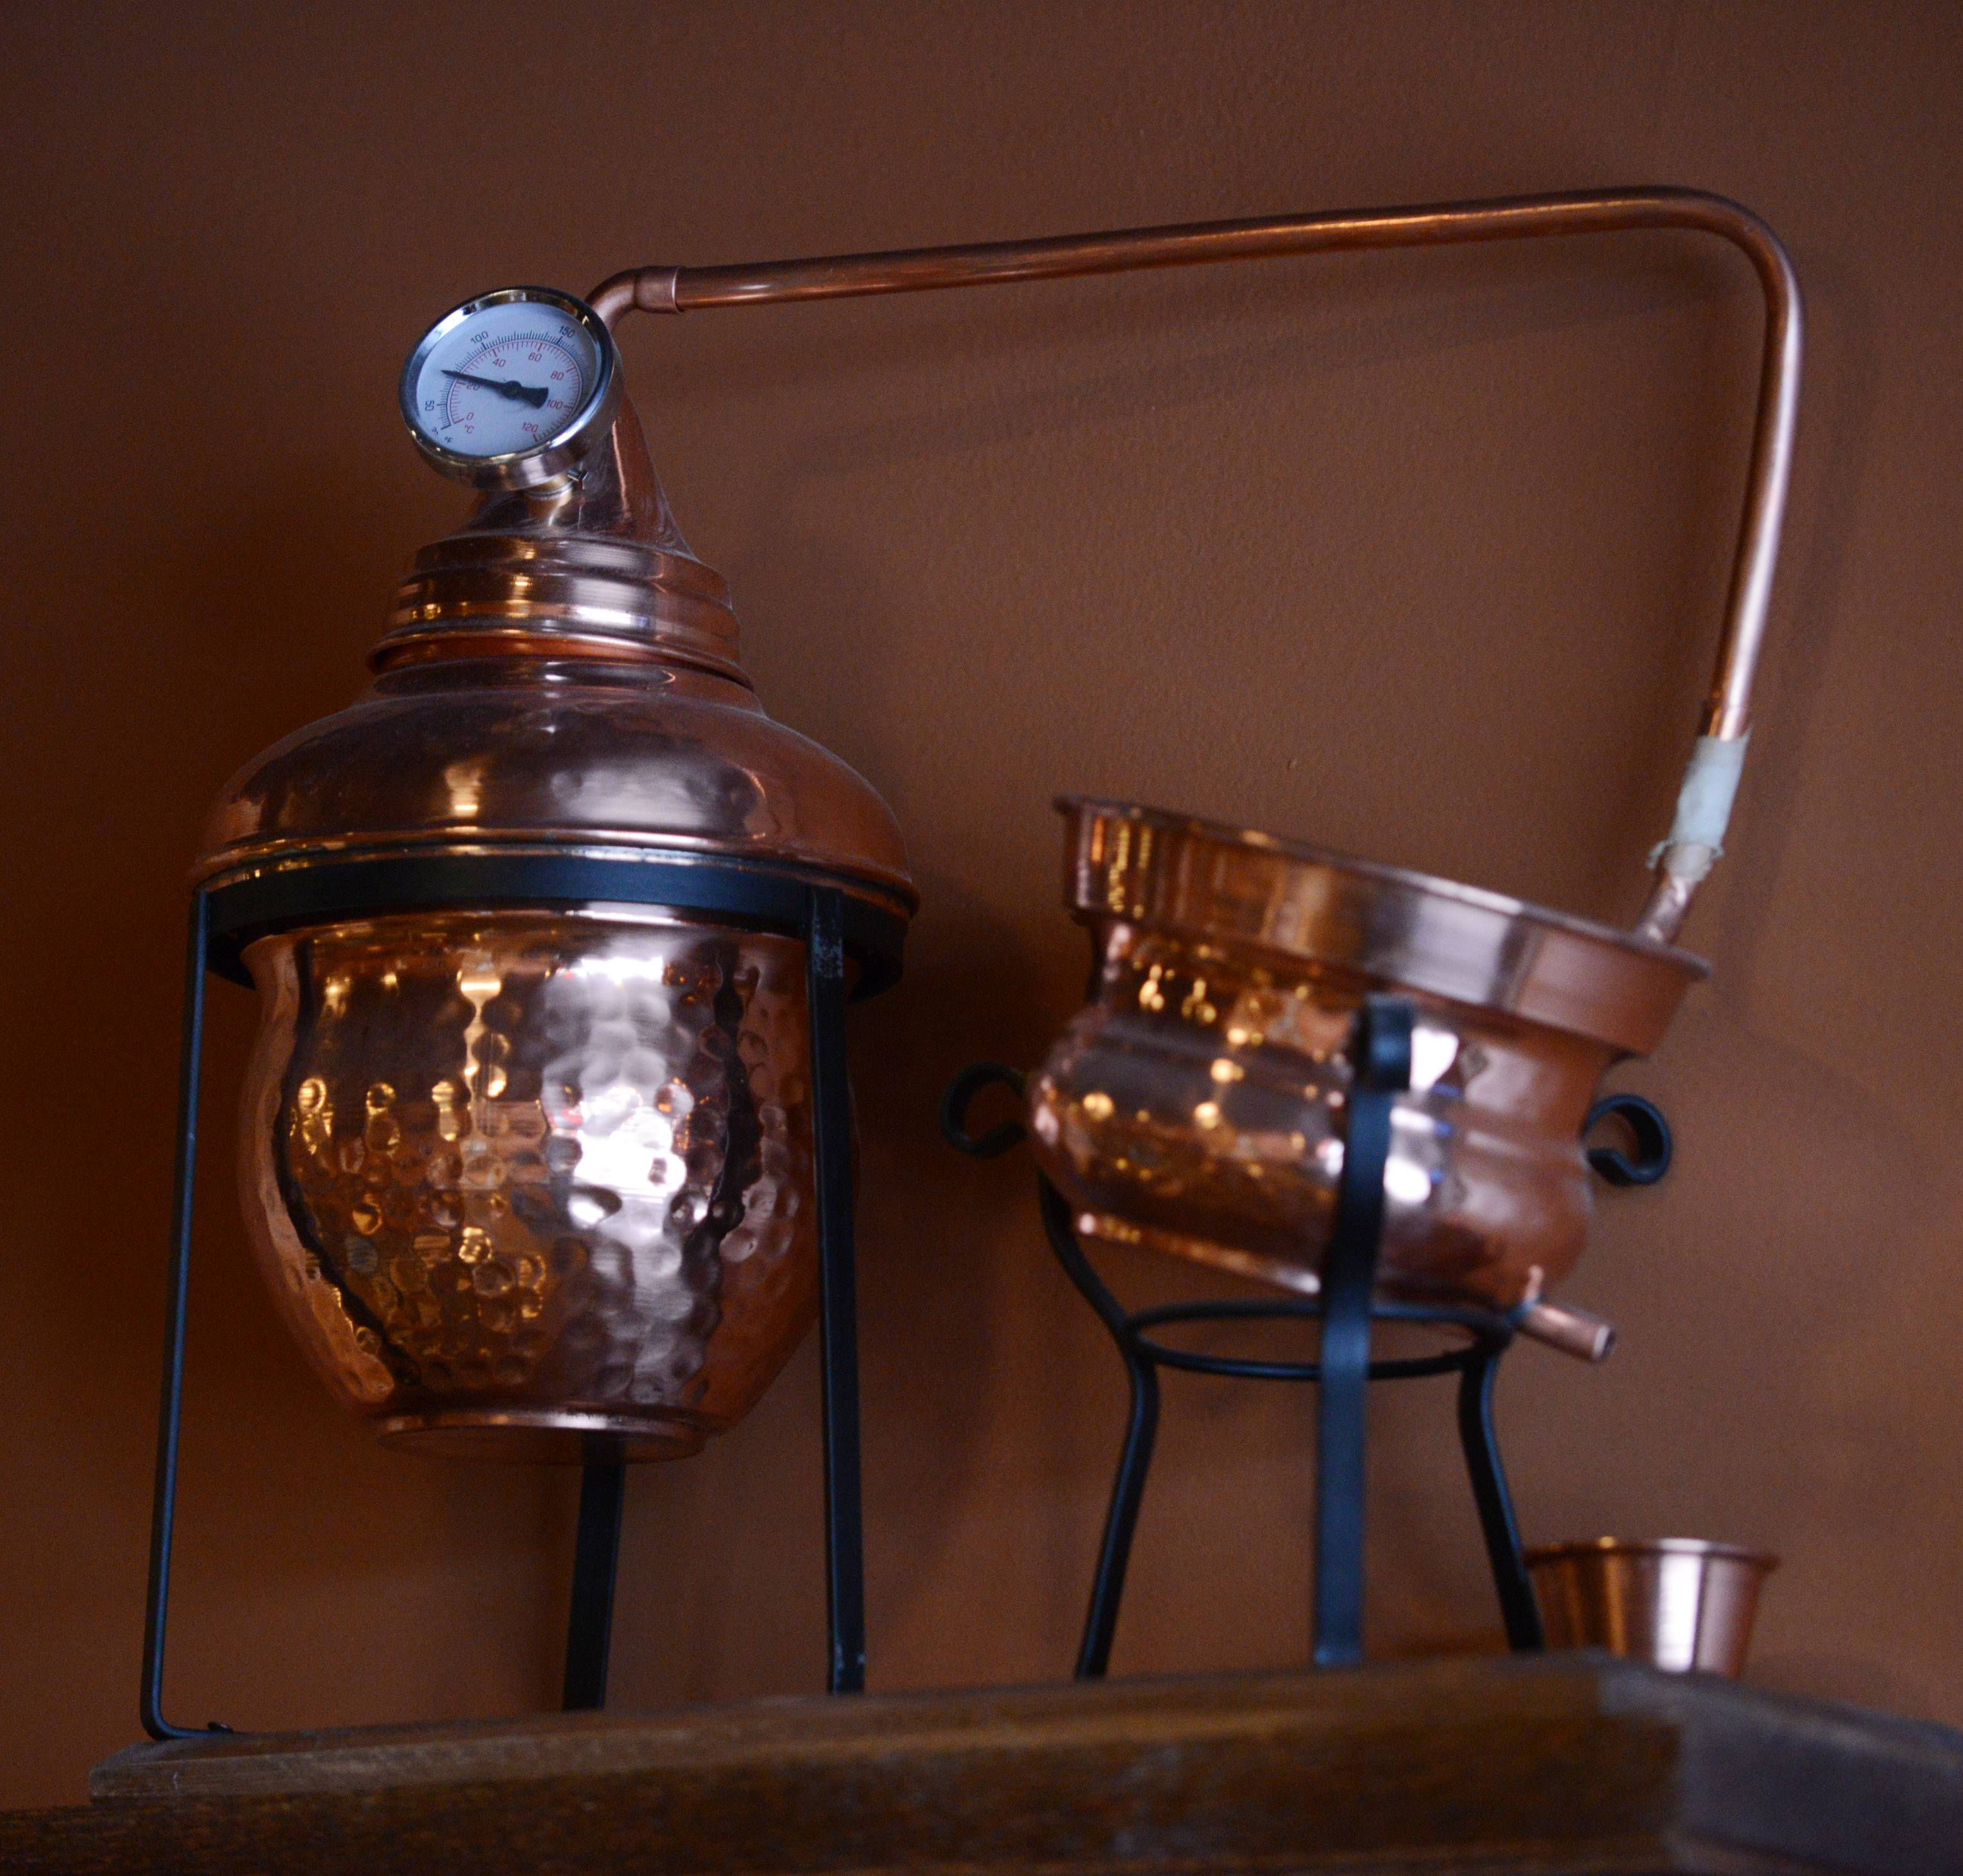 A still like the kind used to make moonshine is on display at The Still Bar and Grill in Bartlett.